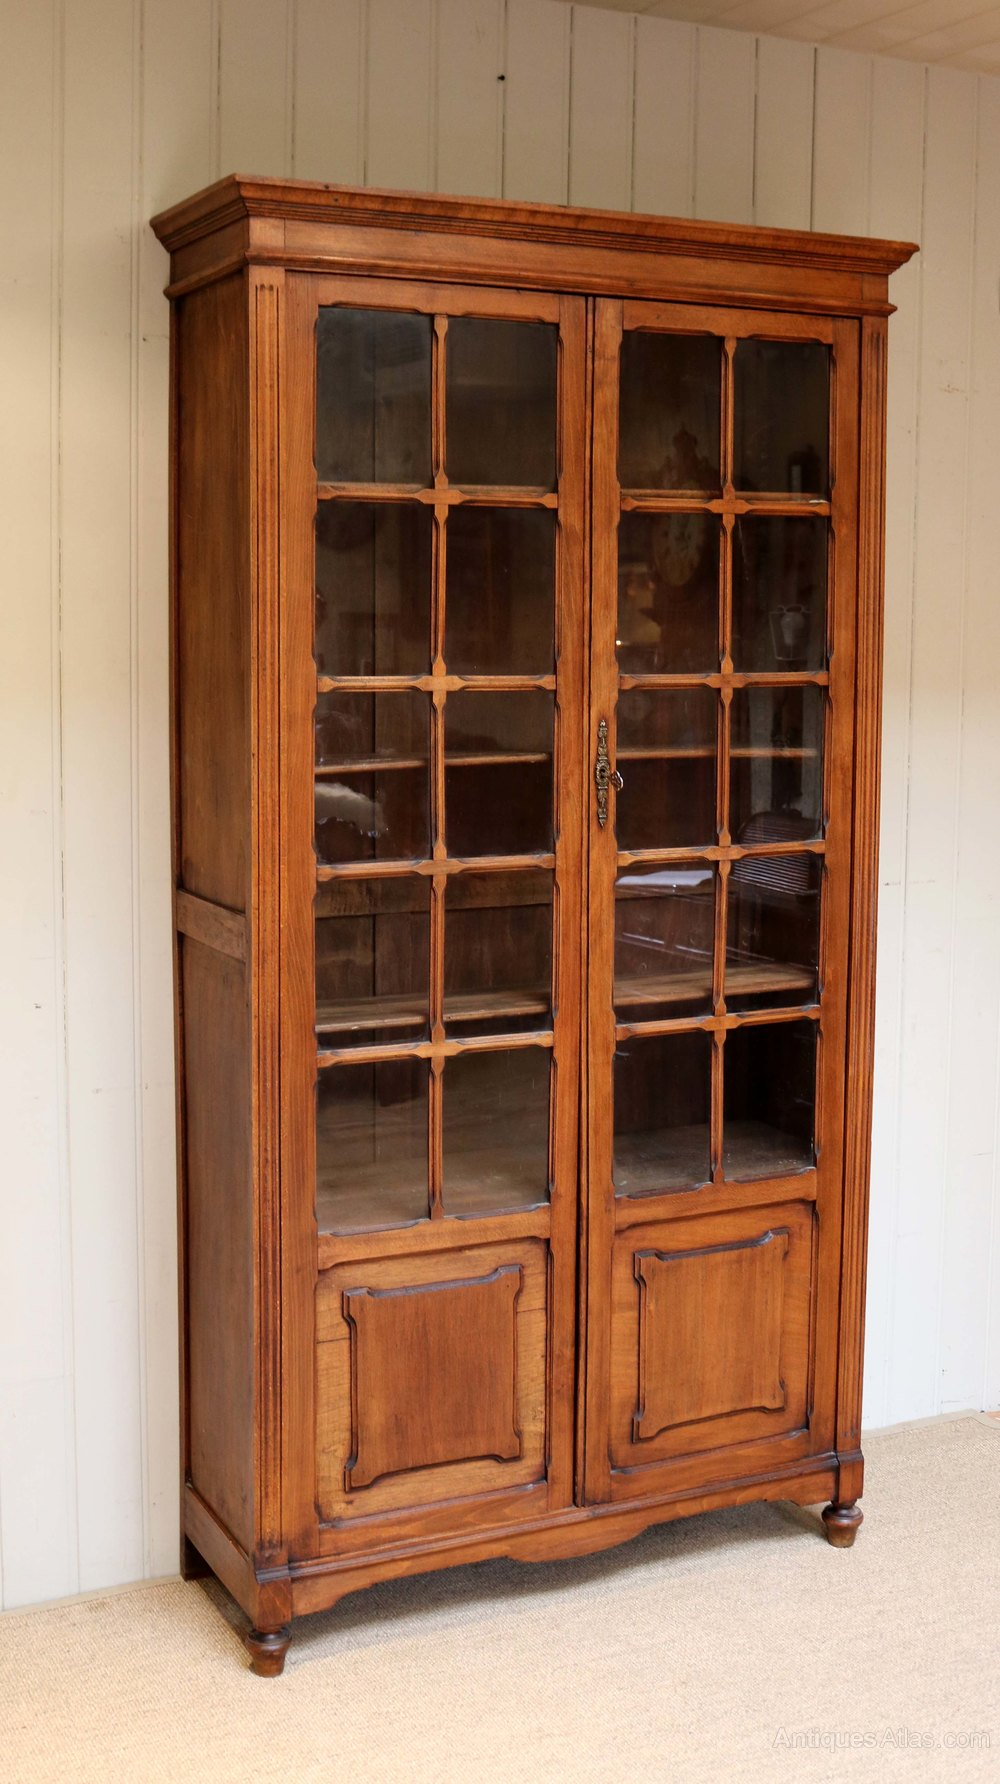 Tall beechwood cabinet bookcase antiques atlas for Kitchen cabinets 50cm wide